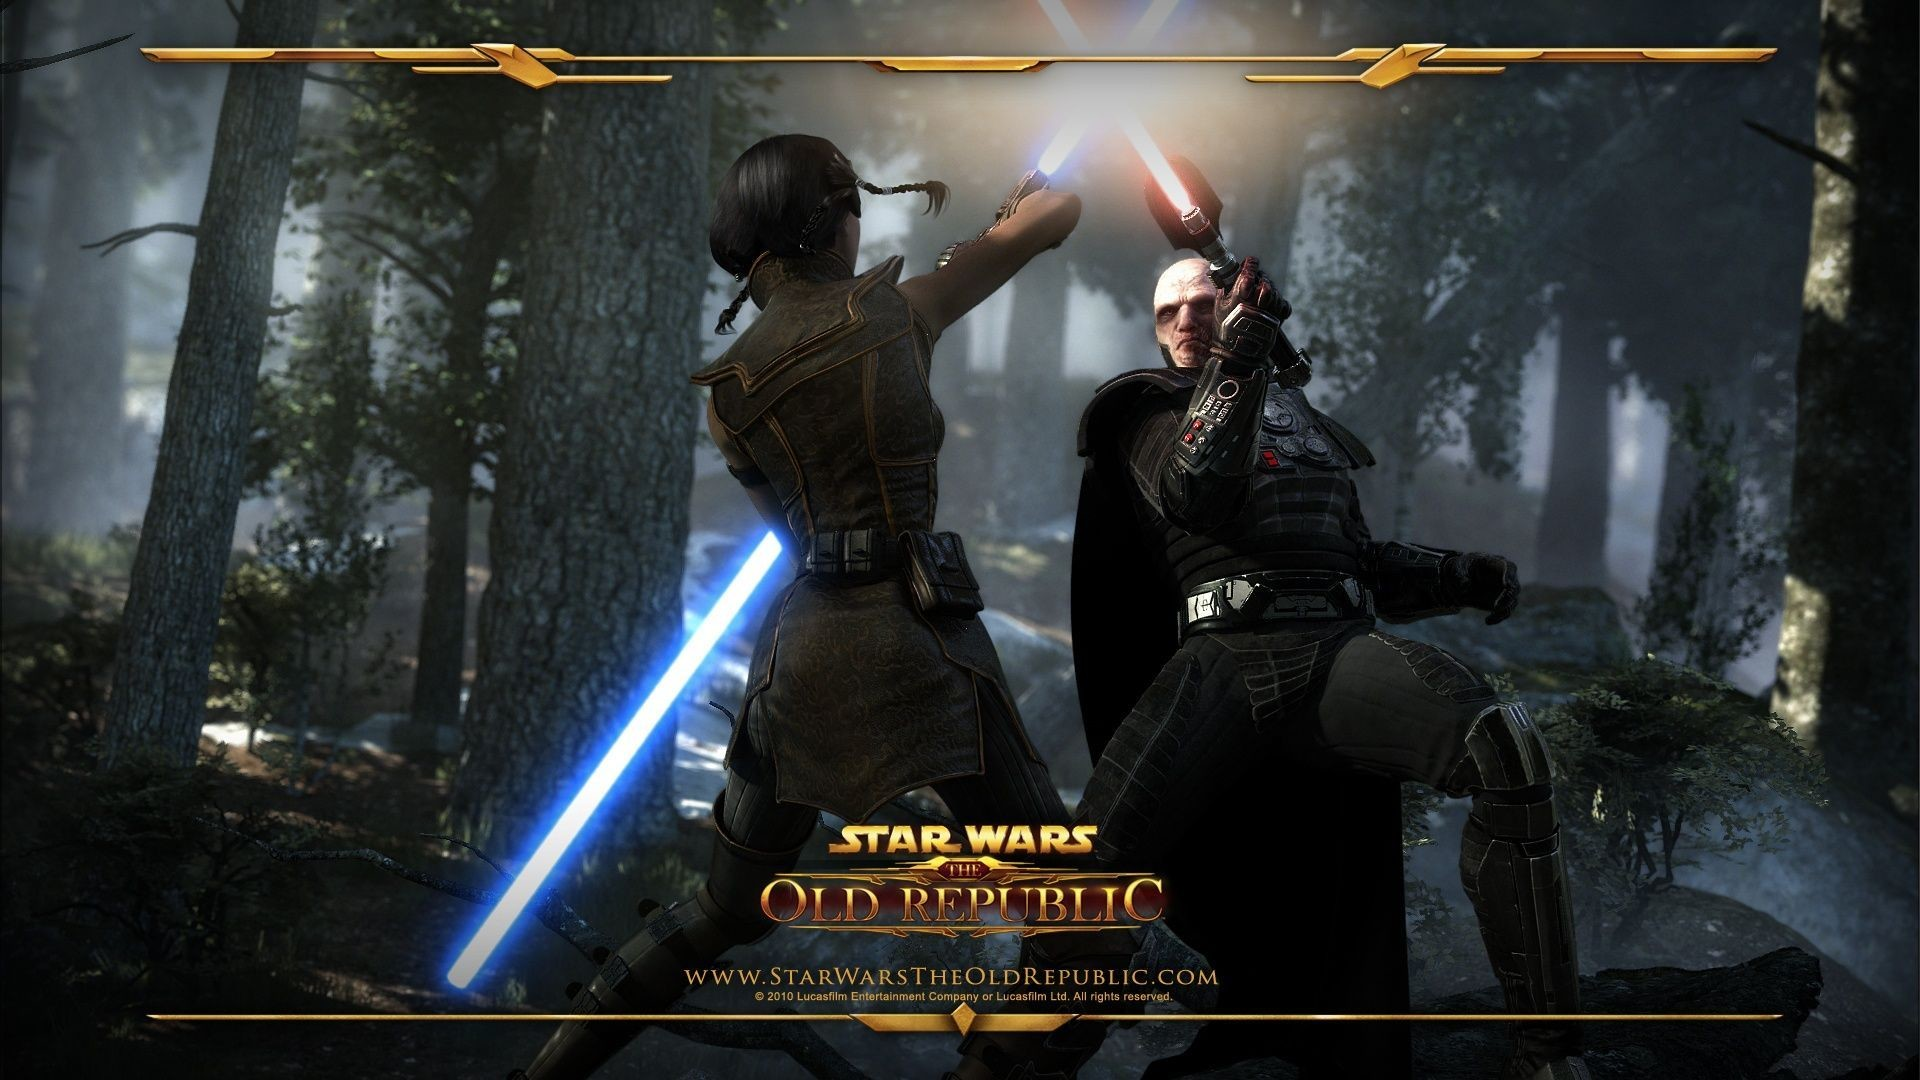 Res: 1920x1080, Star Wars The Old Republic HD Wallpapers and Backgrounds